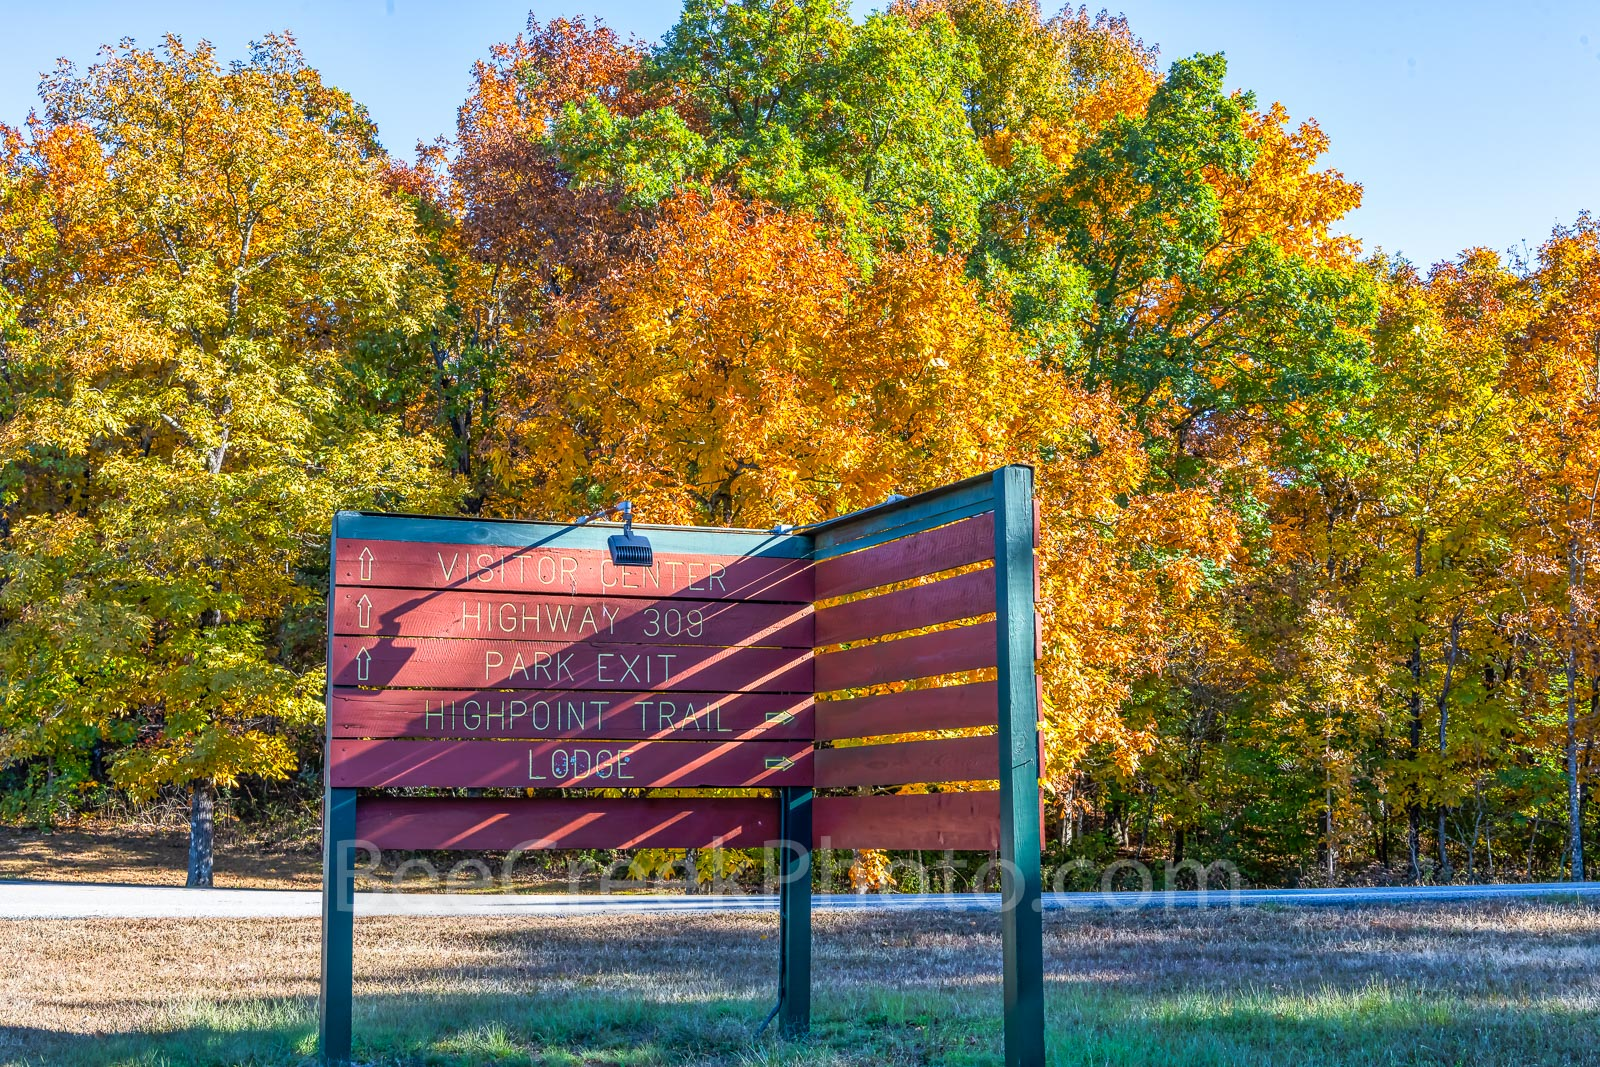 Mount Magazine Entrance - Fall at Mount Magazine entrance sign points the way for those enterering the state park in Arkansas...